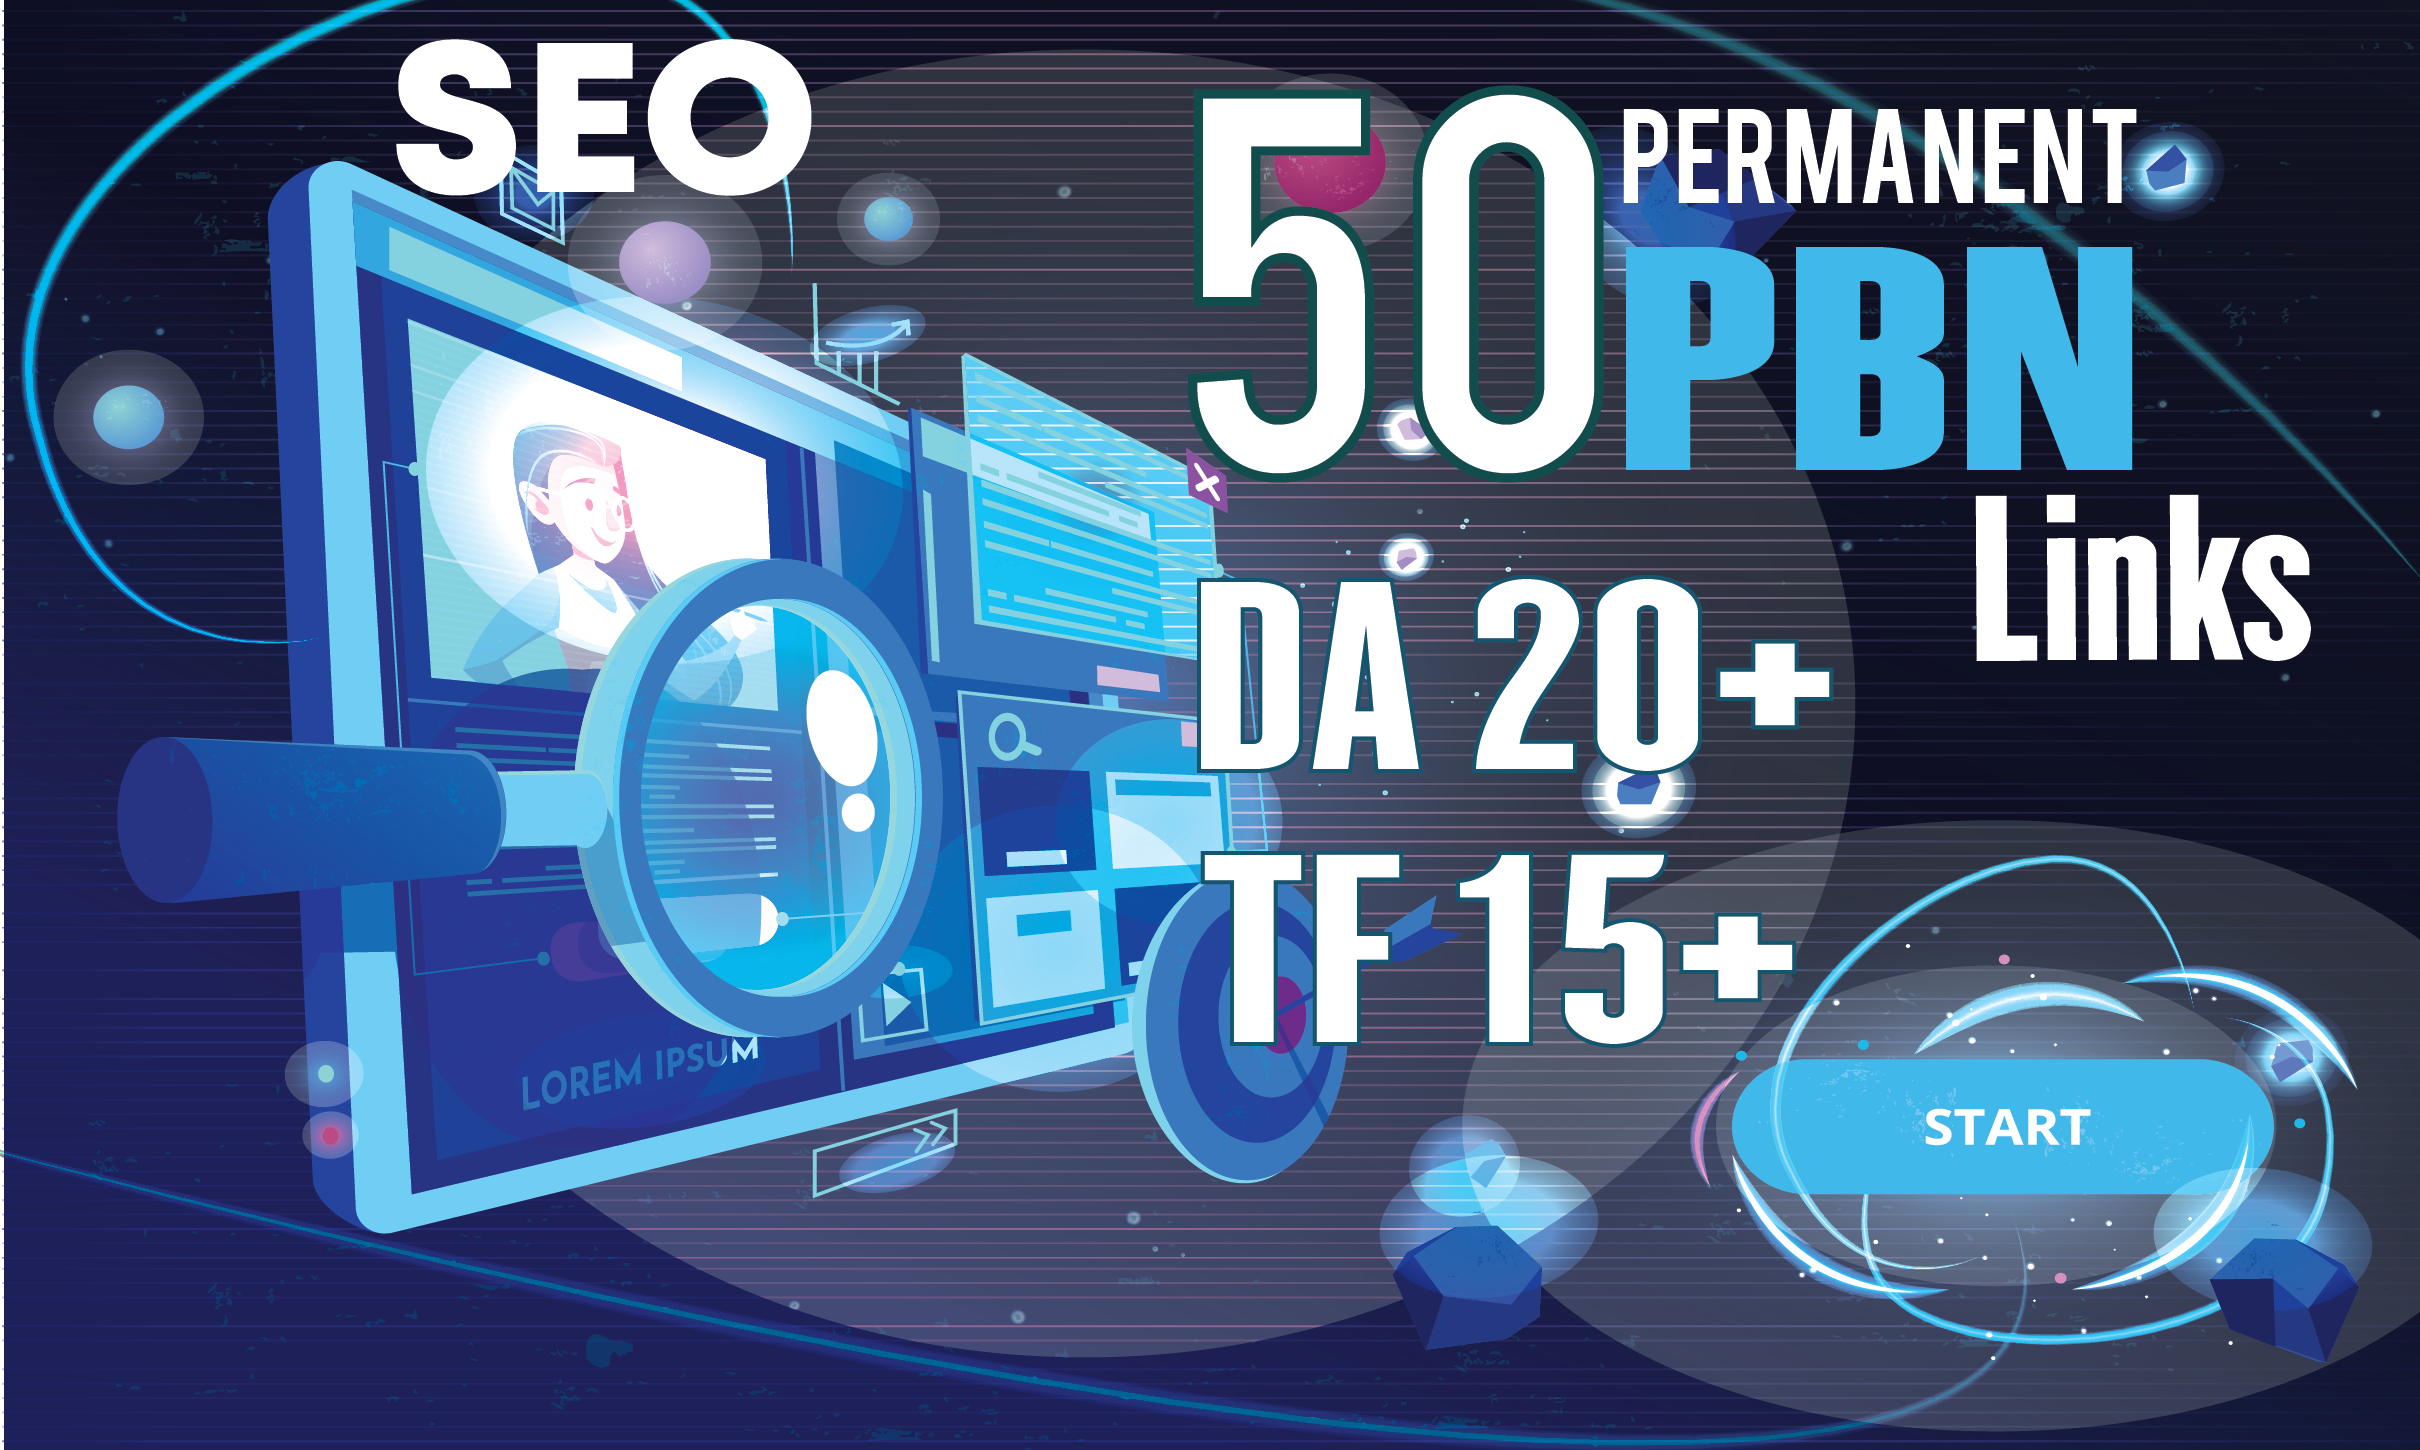 Build 50 Homepage Permanent High Metrics Dofollow PBN Backlinks Delivery Within 24 Hours